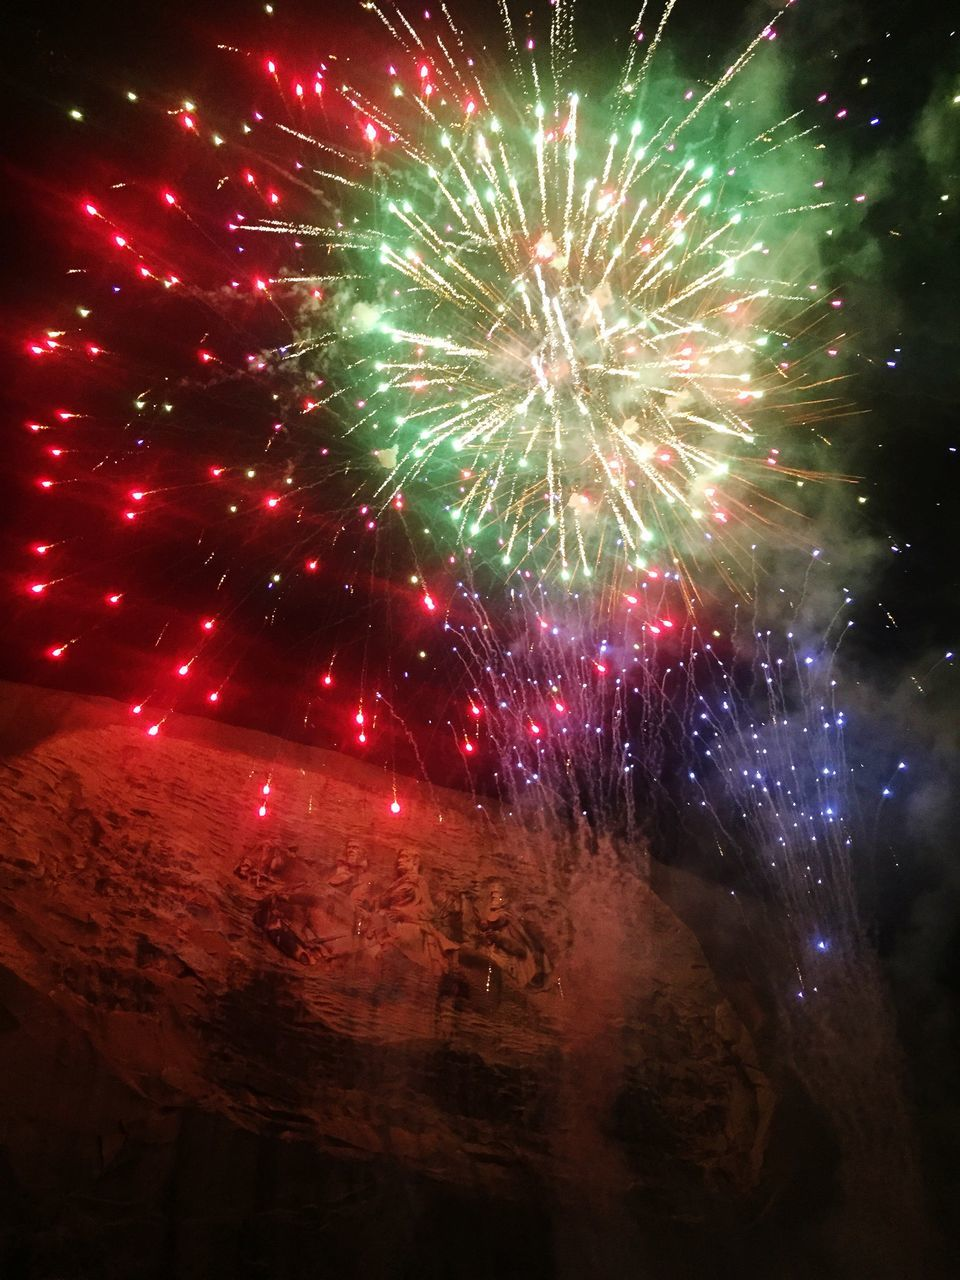 night, exploding, firework display, firework - man made object, celebration, illuminated, low angle view, no people, arts culture and entertainment, red, long exposure, multi colored, outdoors, event, sky, firework